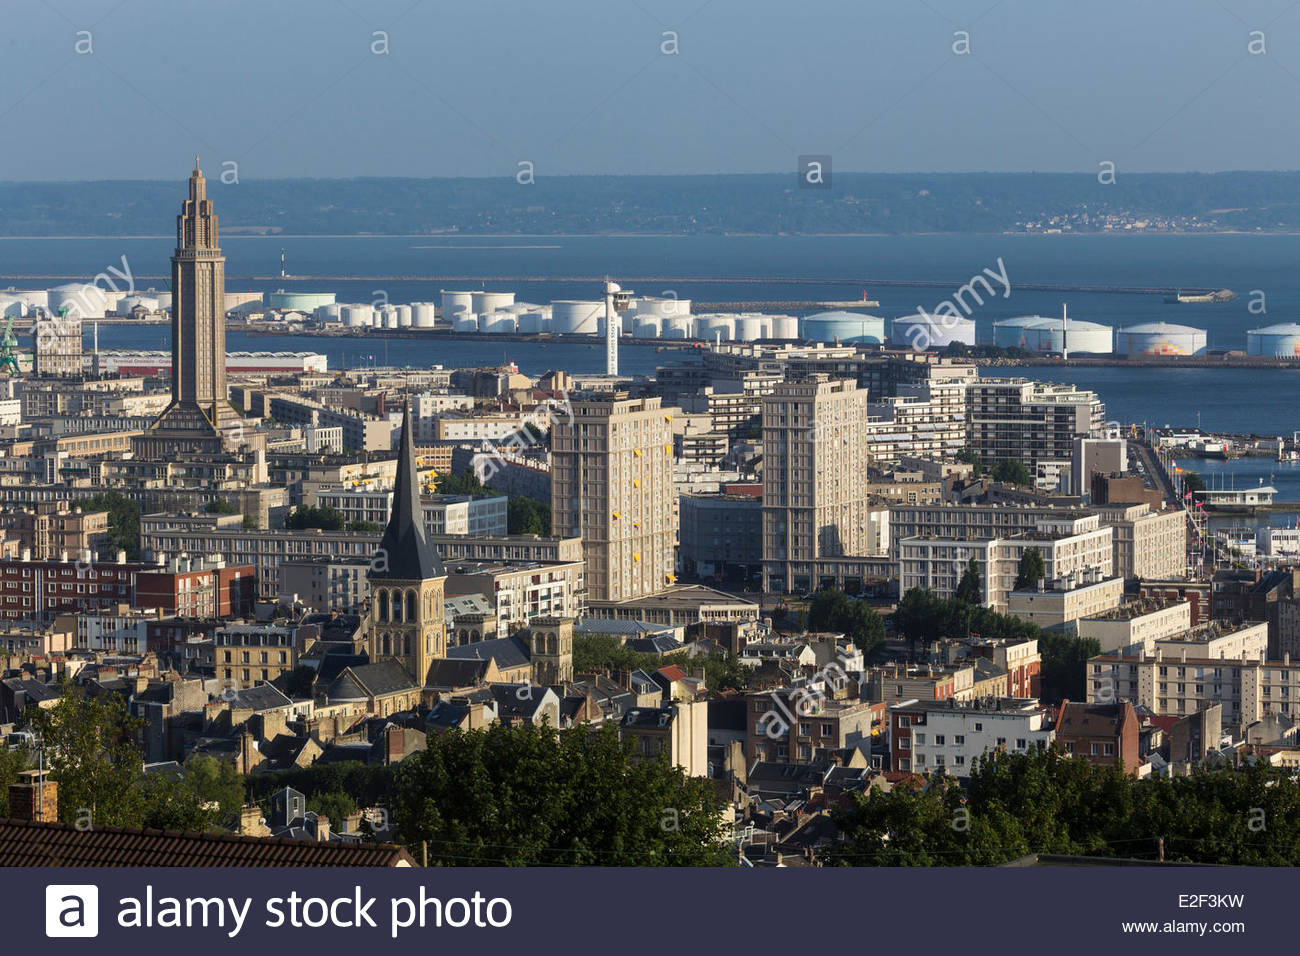 france seine maritime le havre downtown rebuilt by auguste perret stock photo royalty free. Black Bedroom Furniture Sets. Home Design Ideas